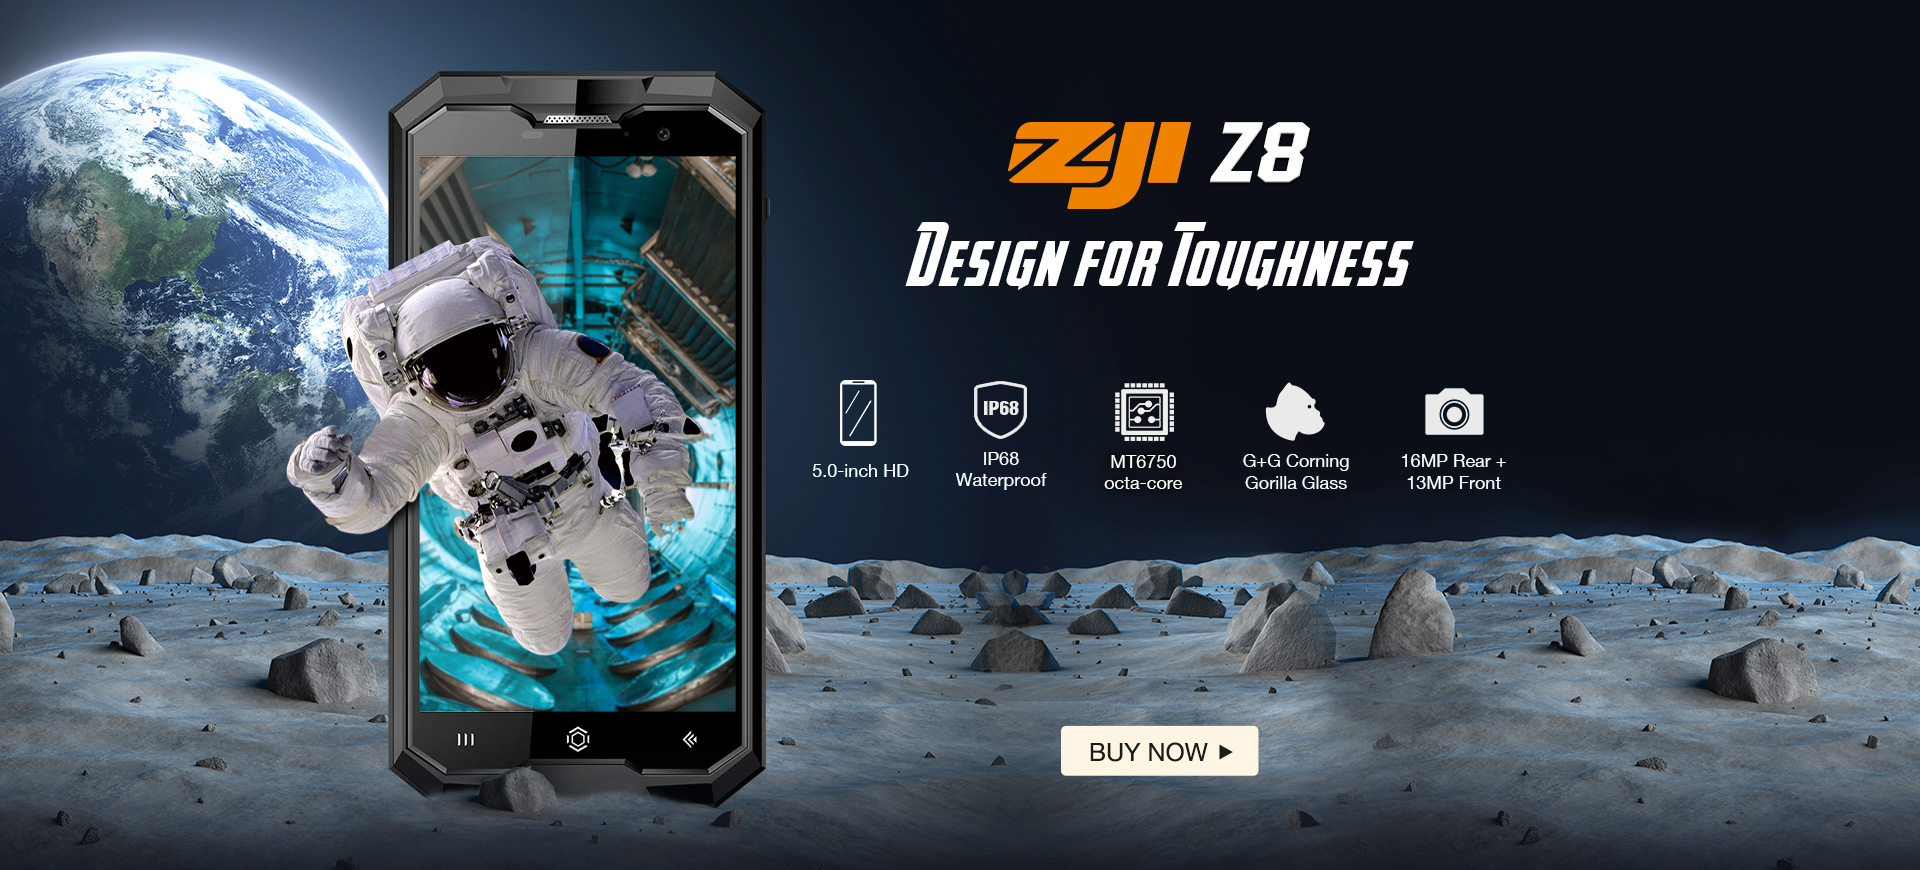 ZOJI Z8 — he's like Darth Vader, only smartphone